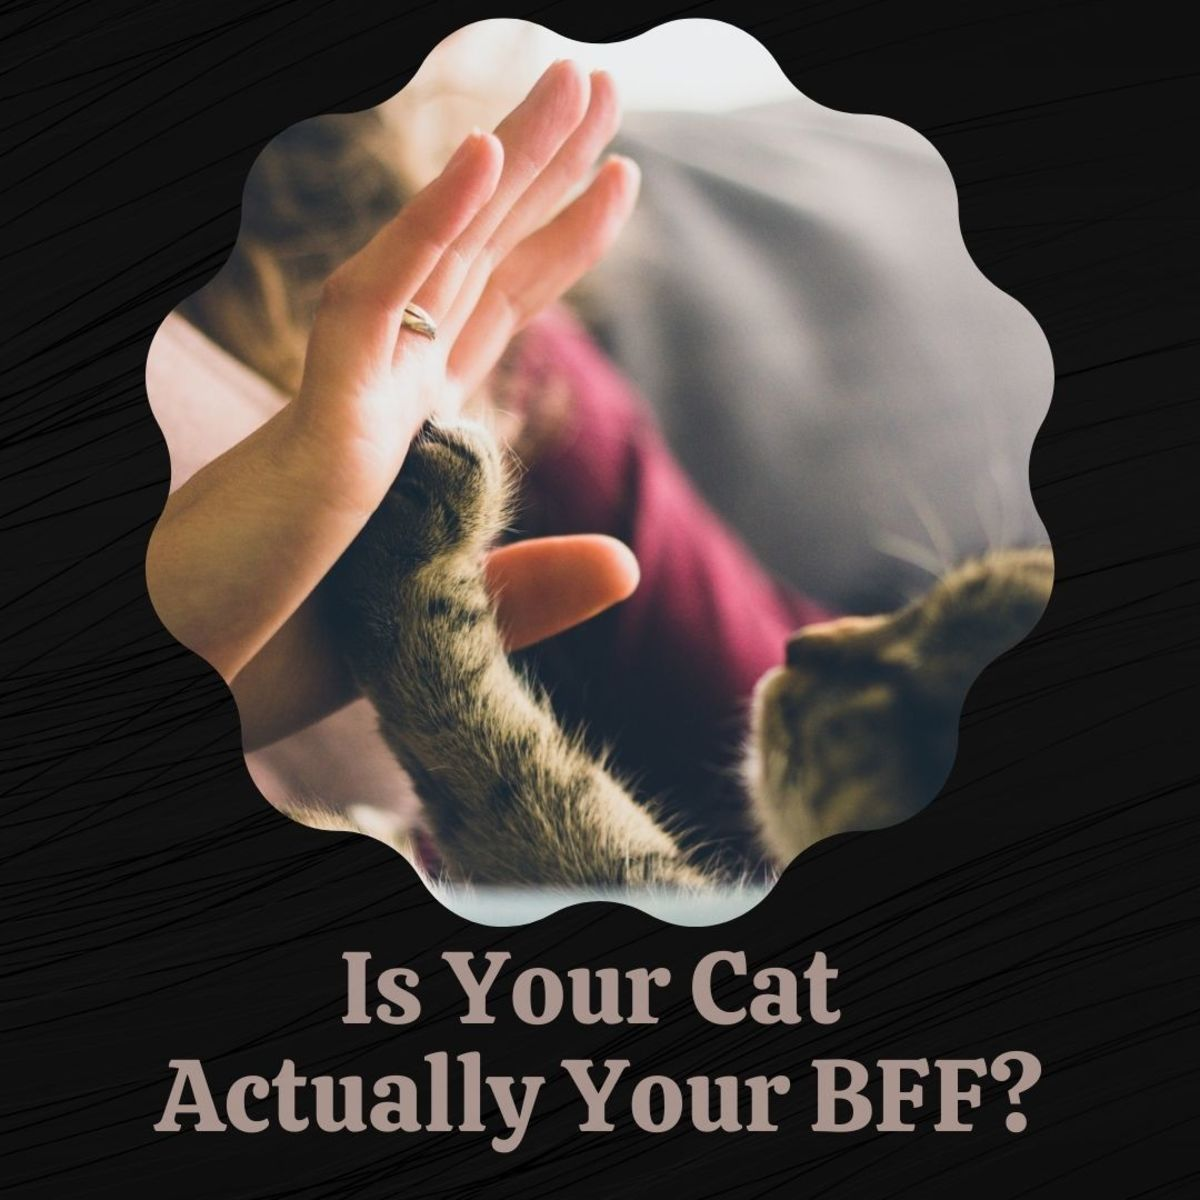 Your cat might be the best friend you'll ever have.